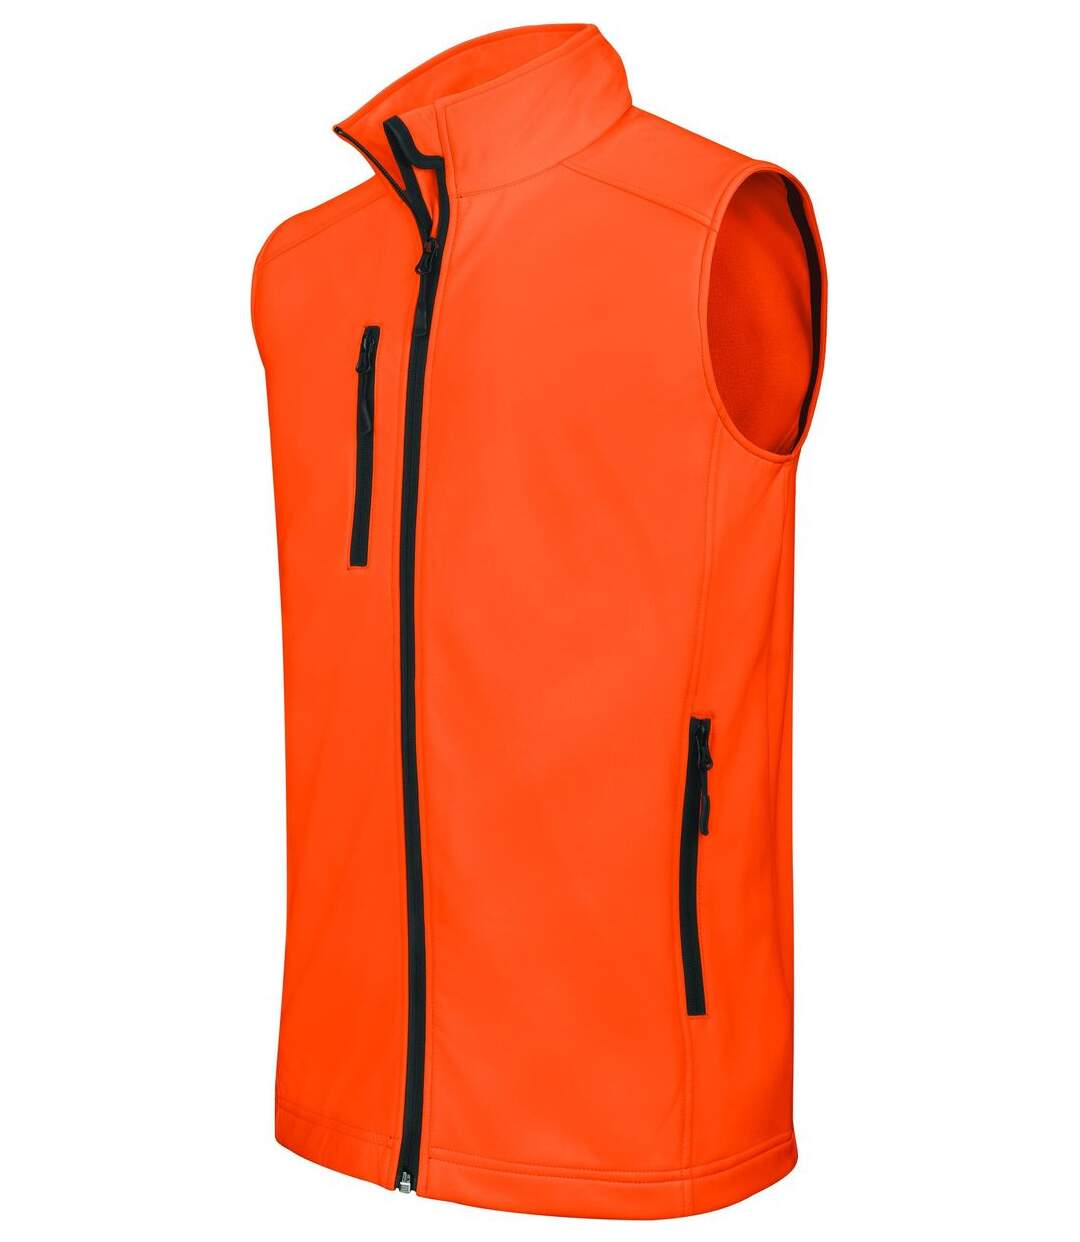 Bodywarmer softshell - gilet sans manches - K403 - orange fluo - Homme